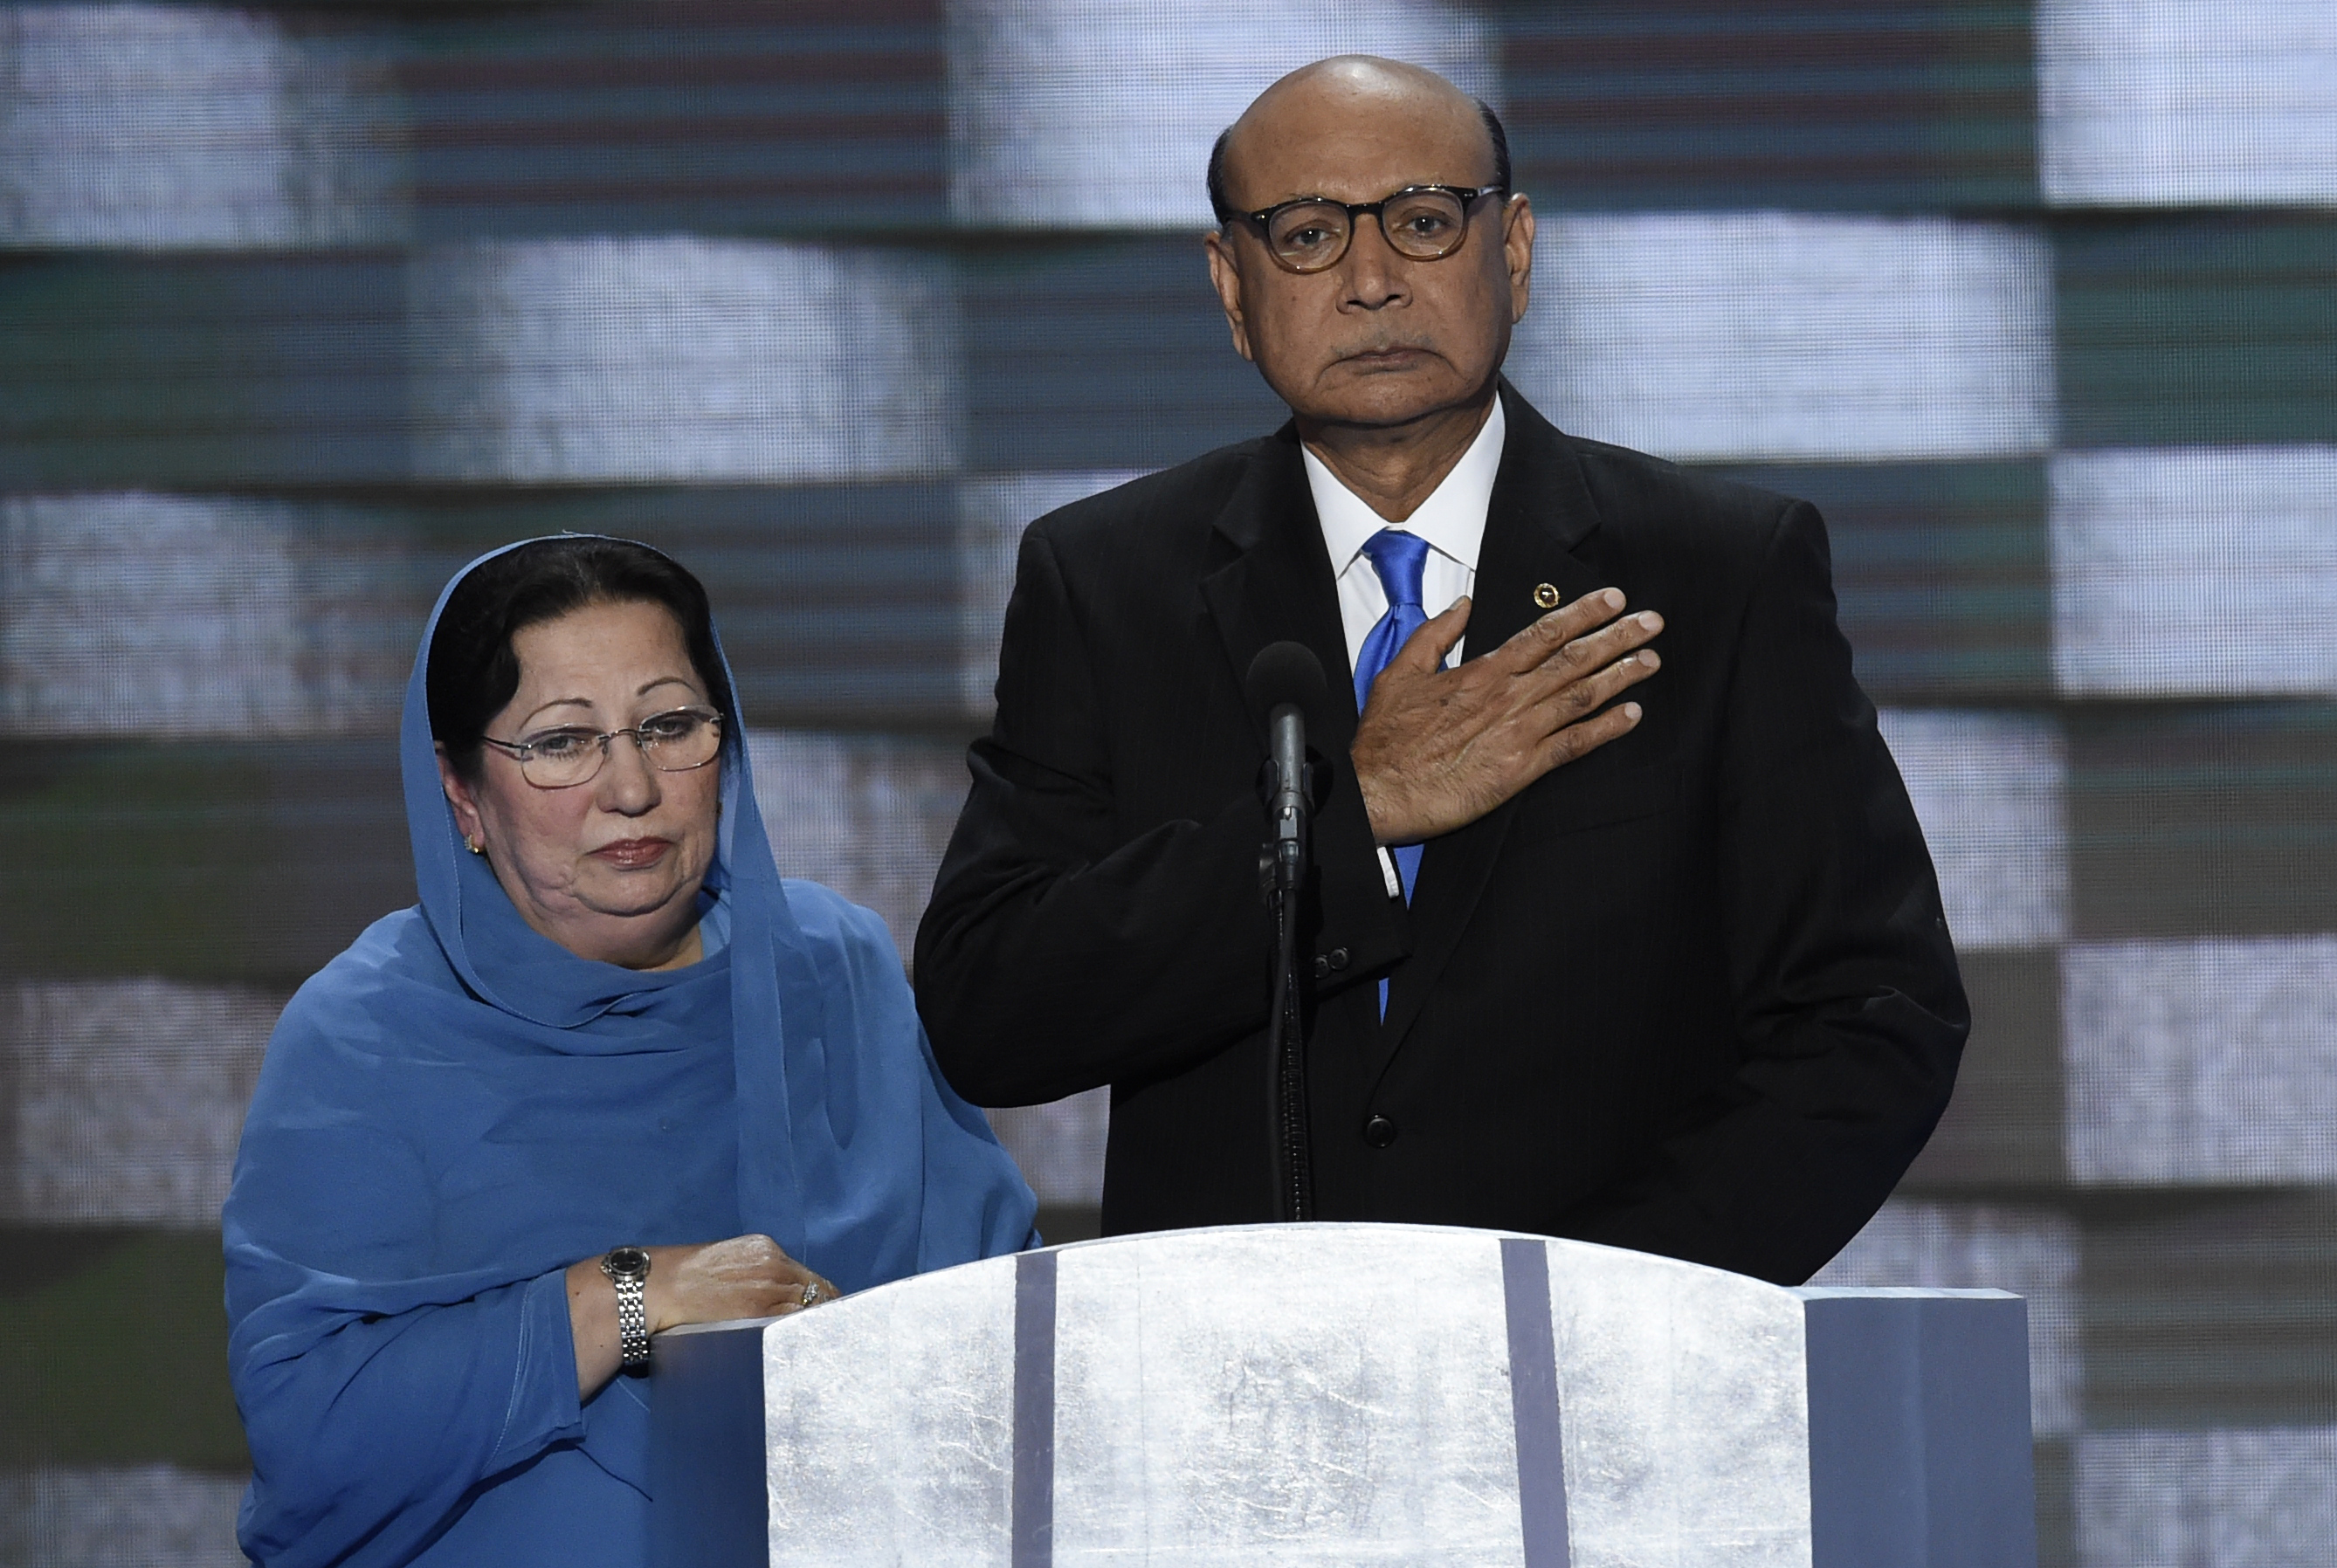 Were The Khans Paid To Speak At The Dnc